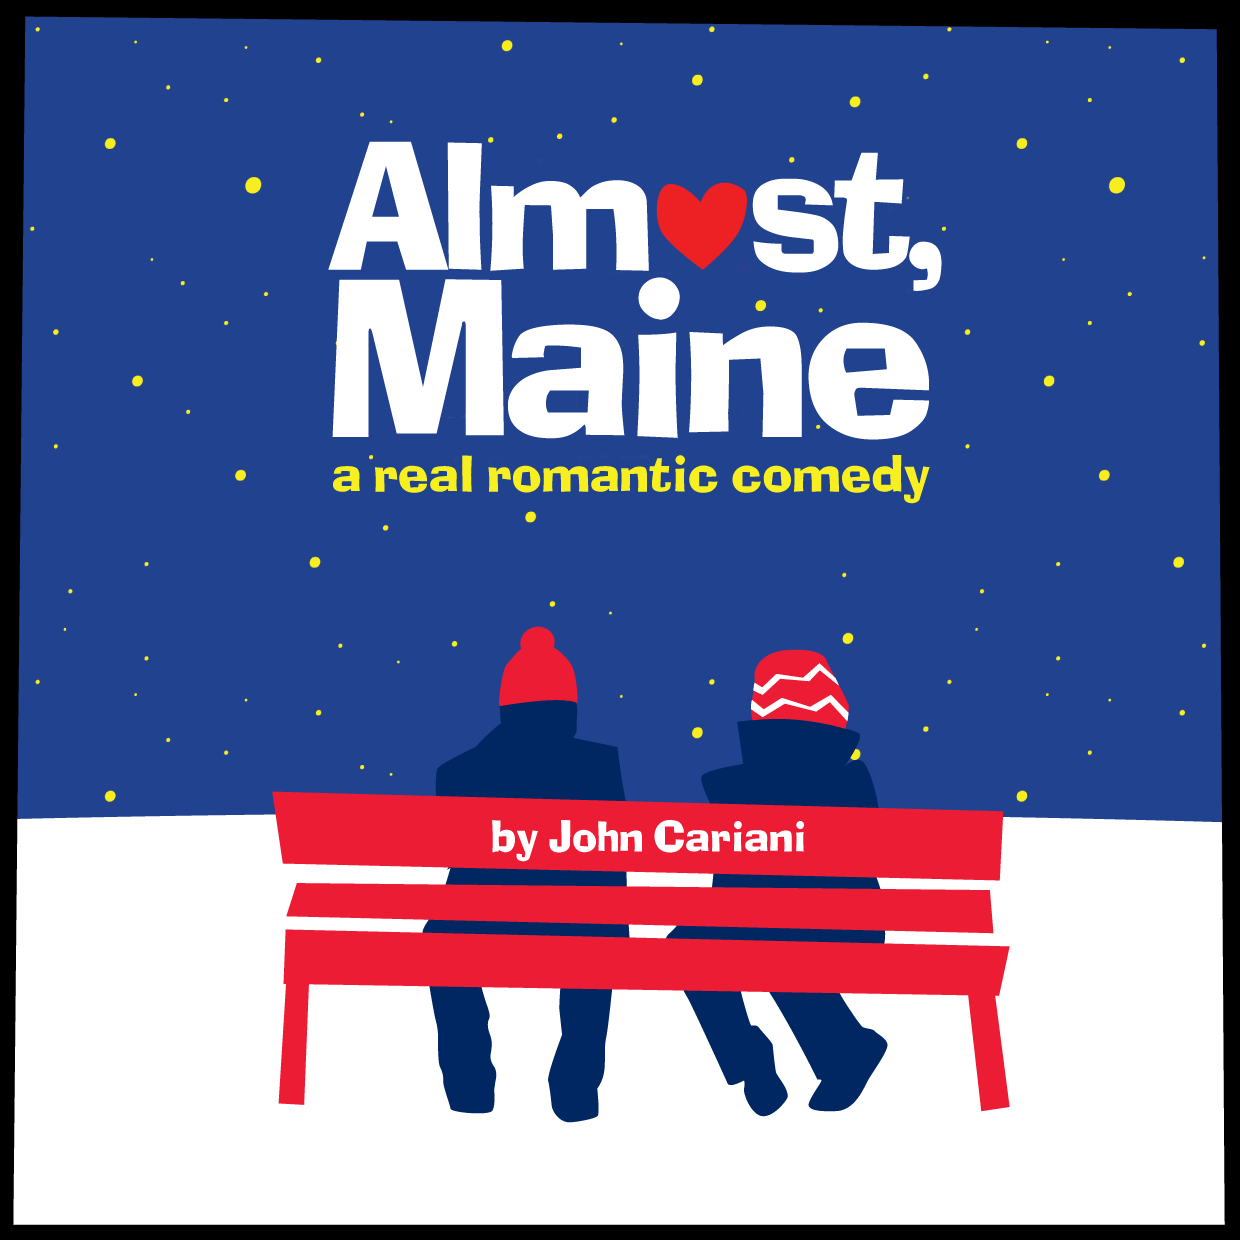 Image result for Almost, Maine by John Cariani